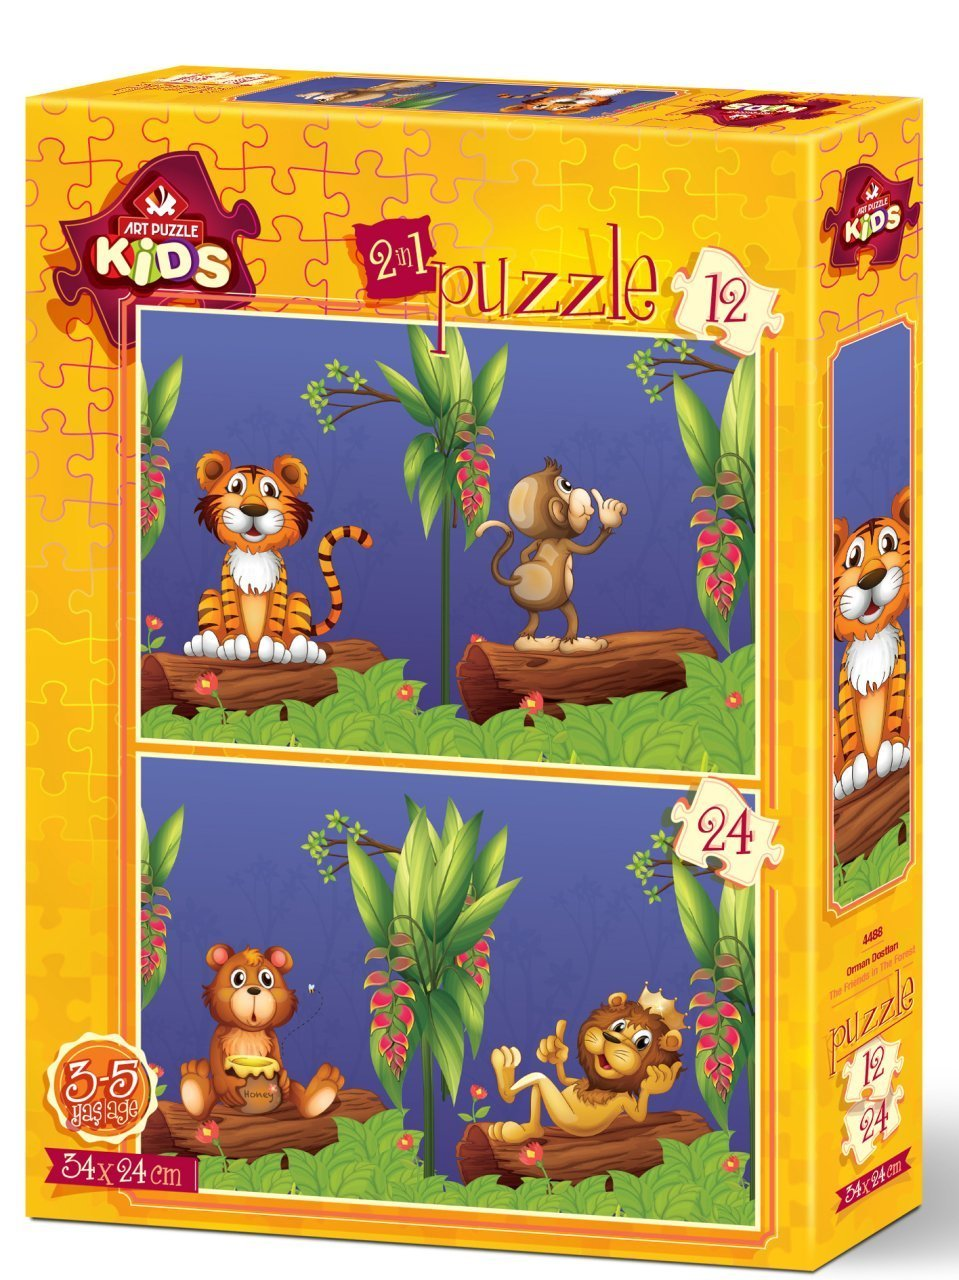 Art Puzzle 2 Puzzles - The Friends in The Forest 12 Teile Puzzle Art-Puzzle-4488